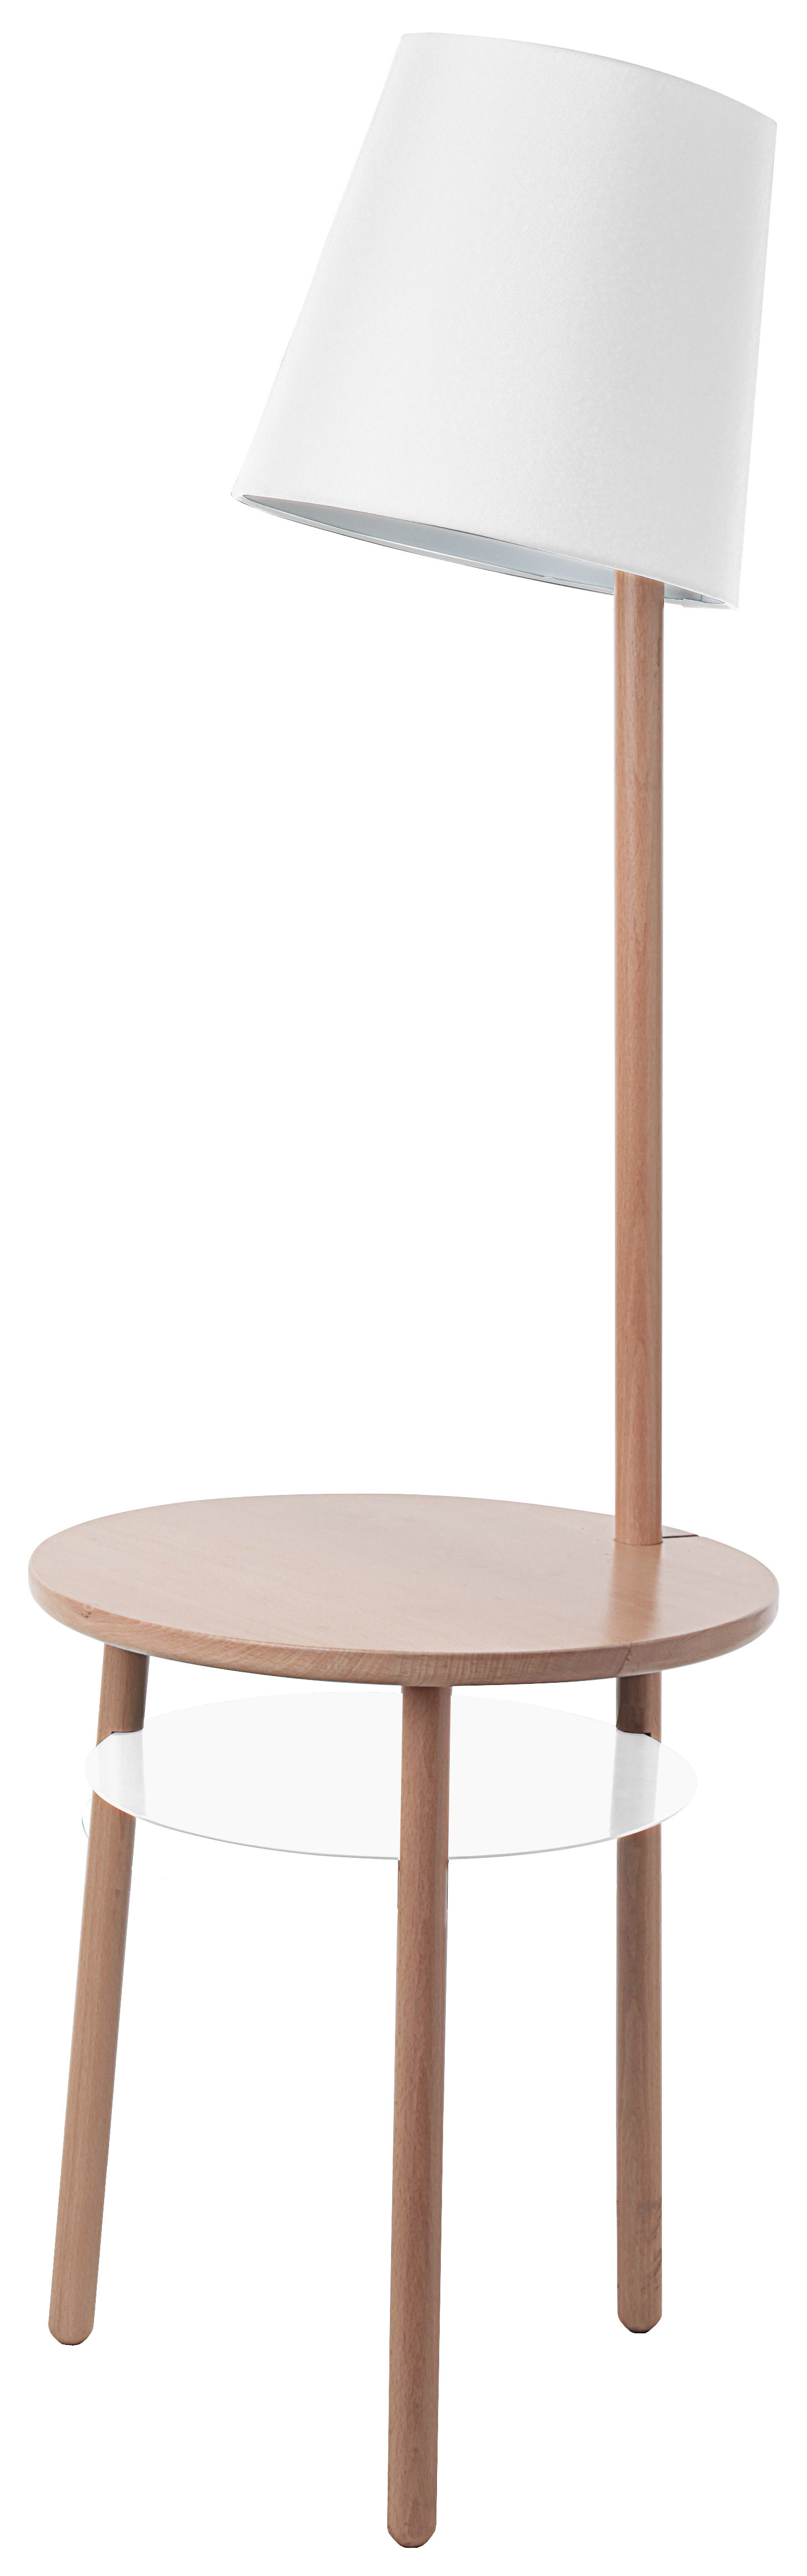 Furniture - Coffee Tables - Josette Floor lamp by Hartô - White - Cotton, Lacquered metal, Natural beechwood